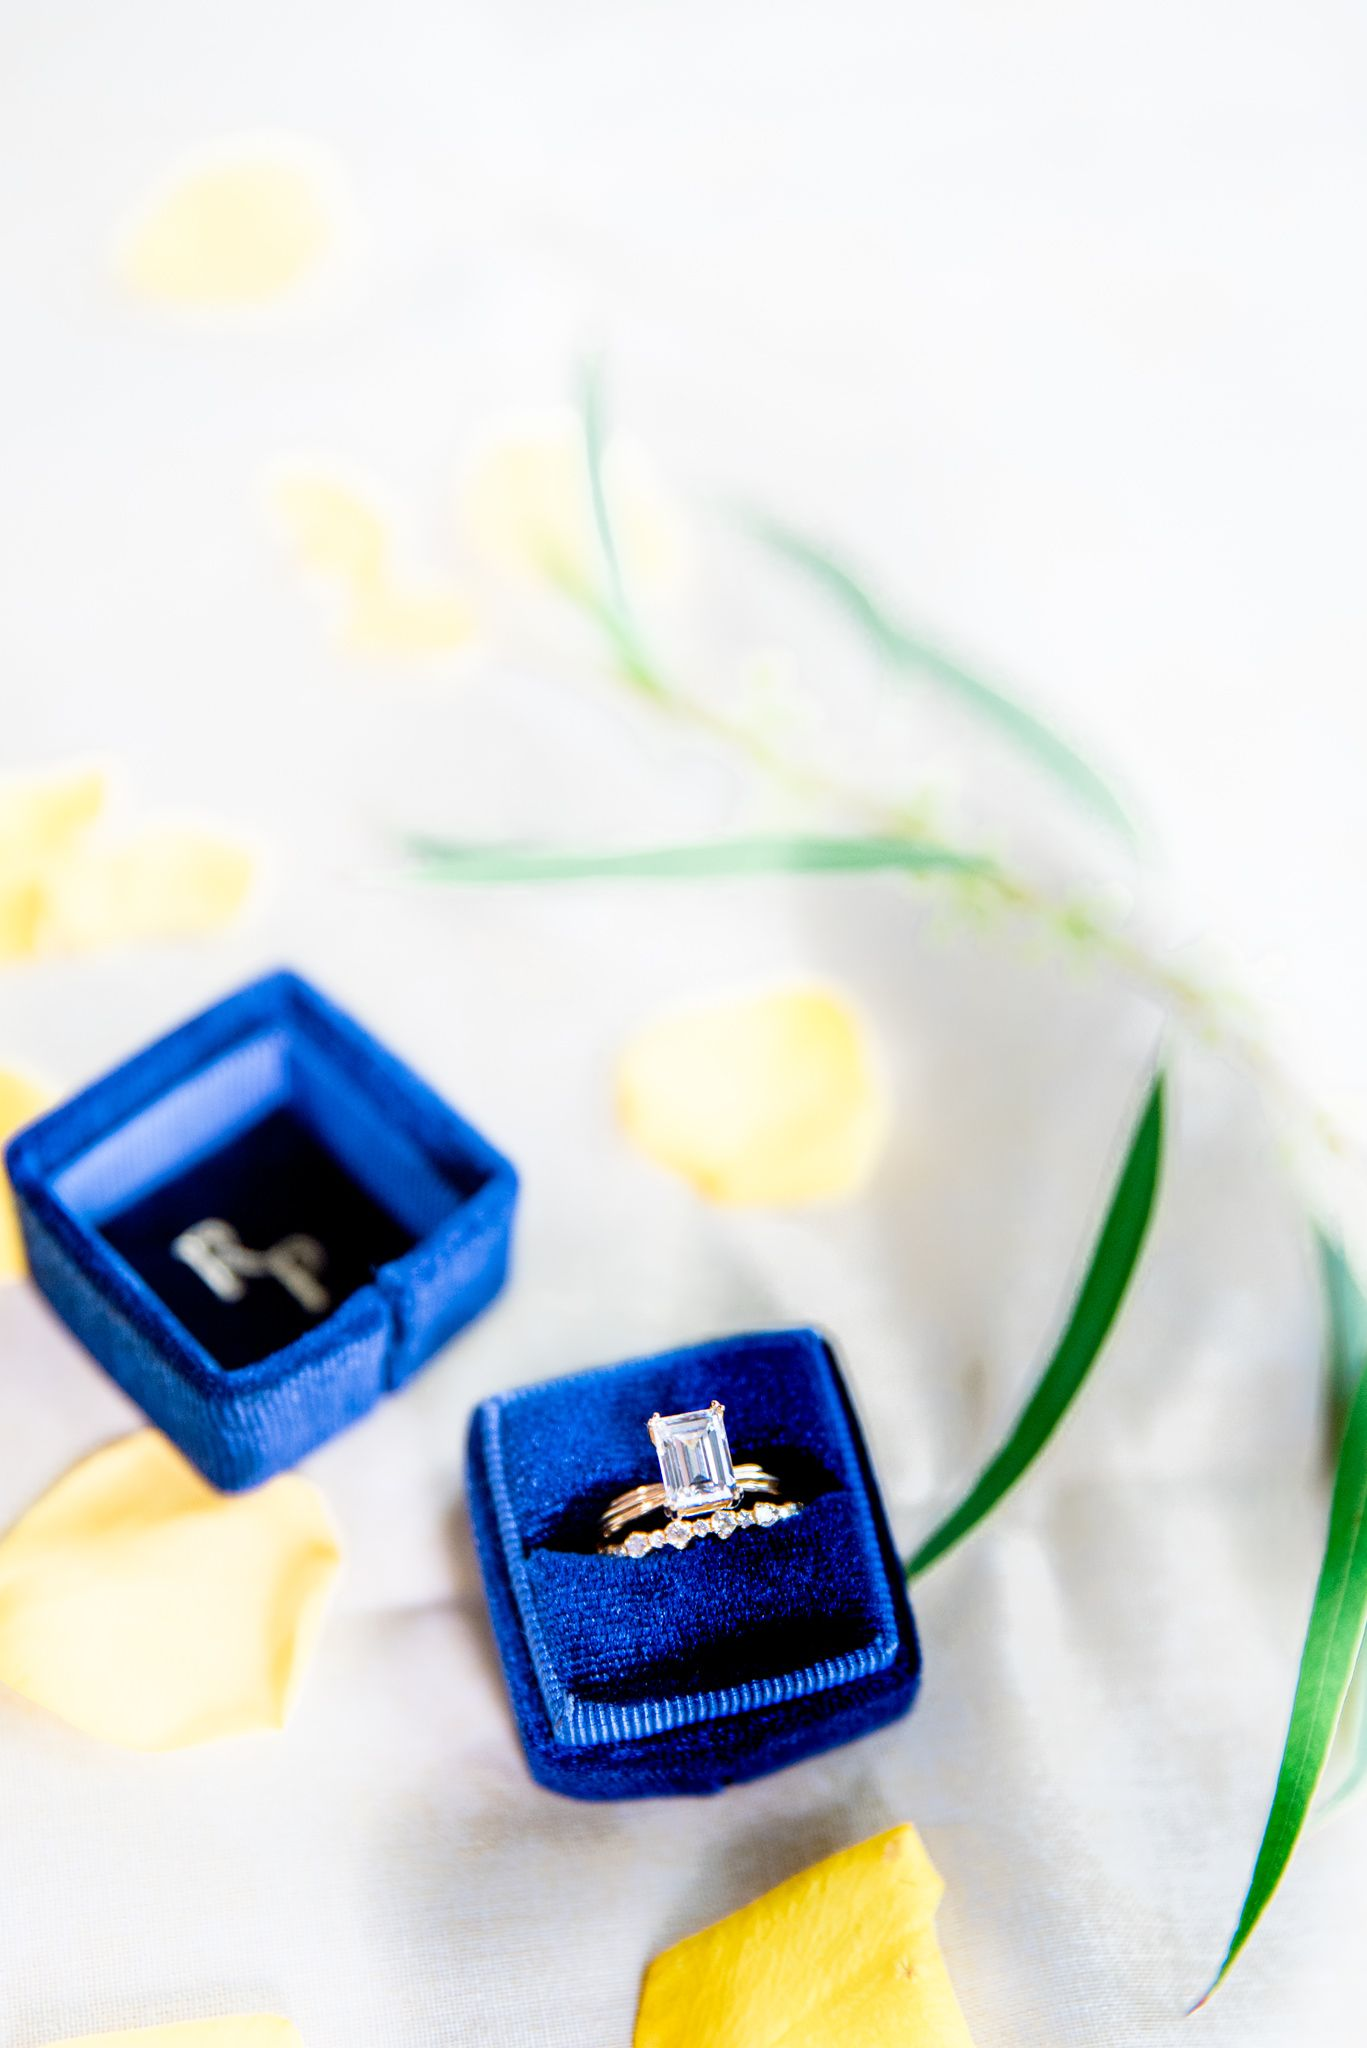 emerald cute diamond engagement ring and gold wedding ring in blue ring box next to greenery and yellow rose petals